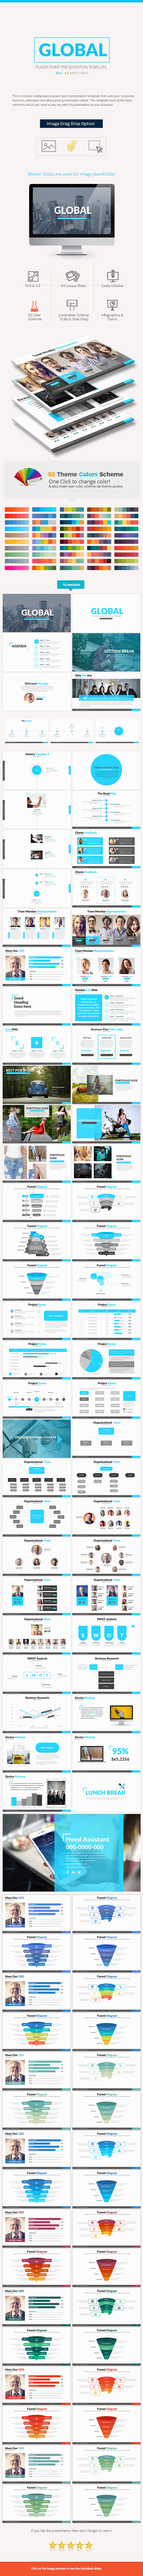 Global Power Point Presentation - Business PowerPoint Templates